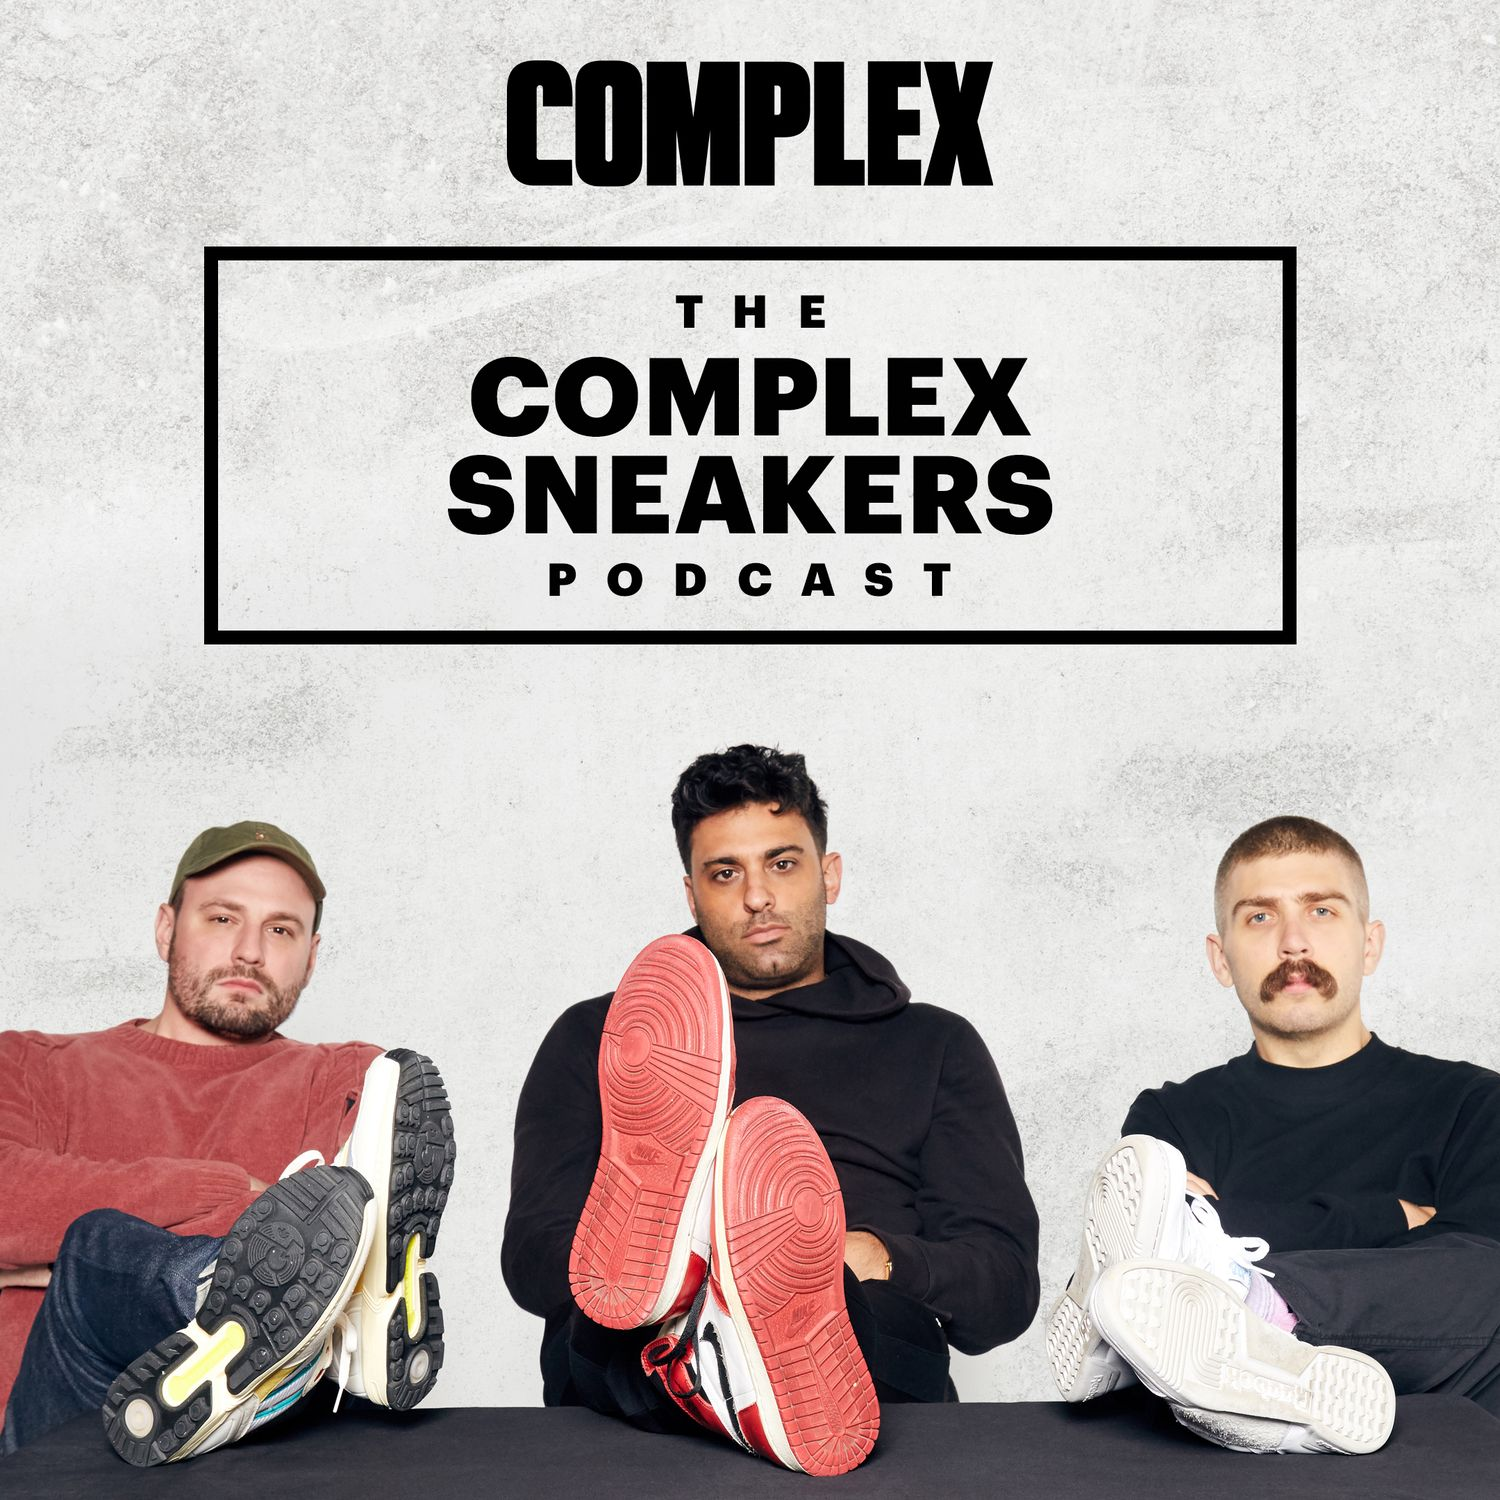 The Complex Sneakers Podcast